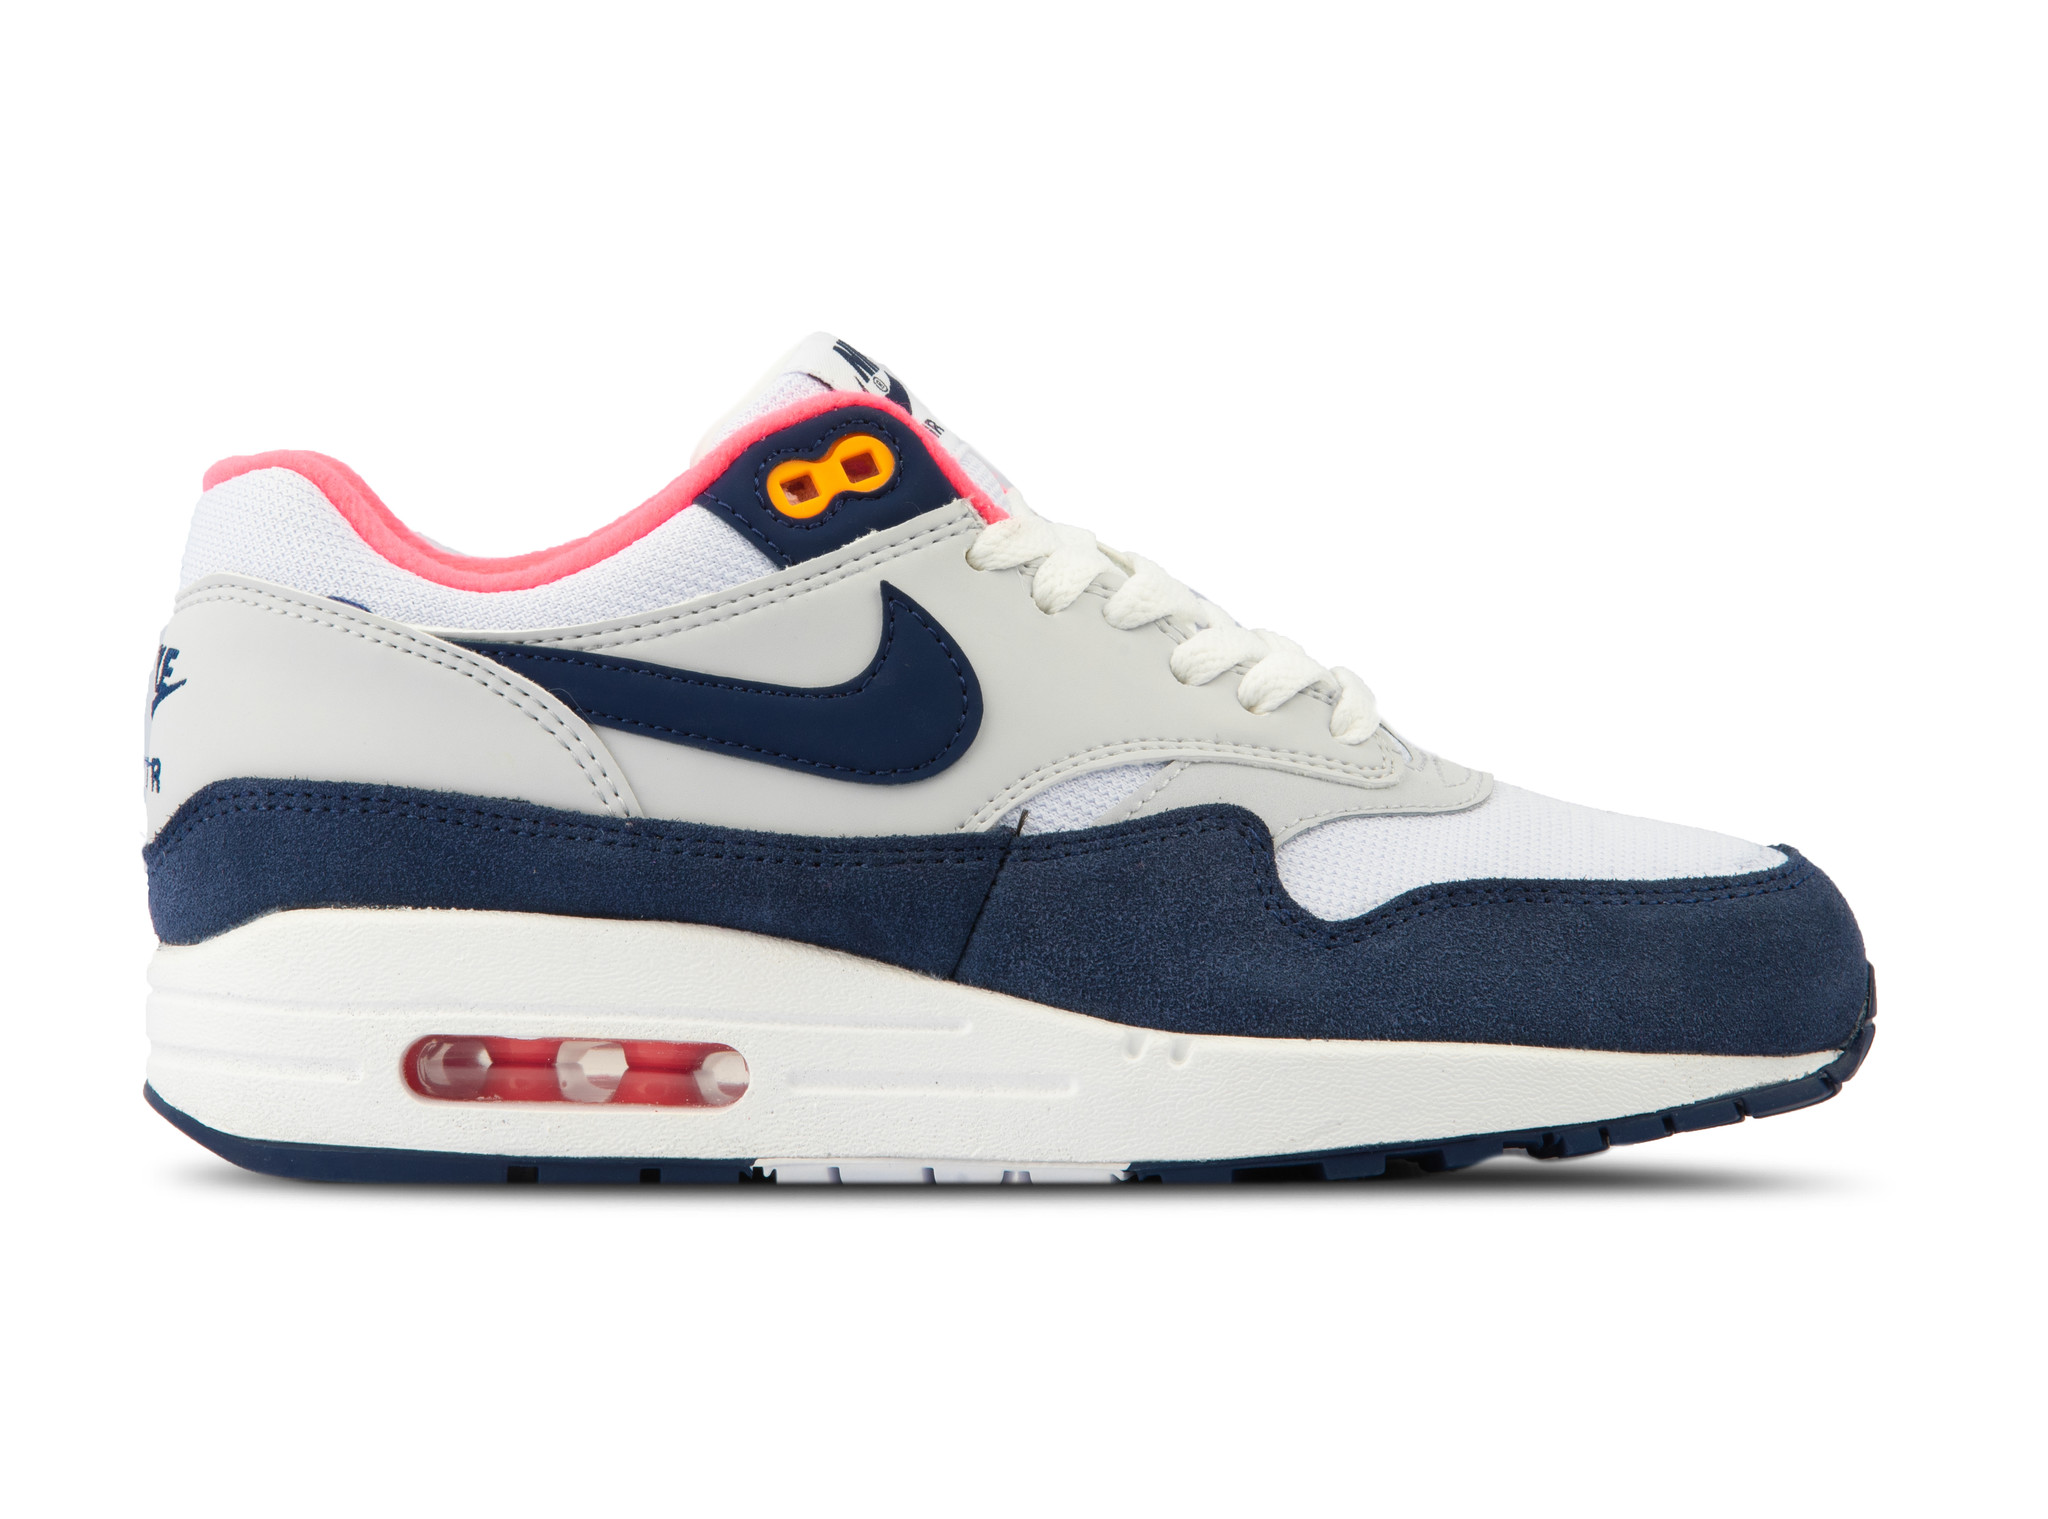 57be970dc7cddf WMNS Air Max 1 White Midnight Navy 319986 116 will be added to your  shopping card